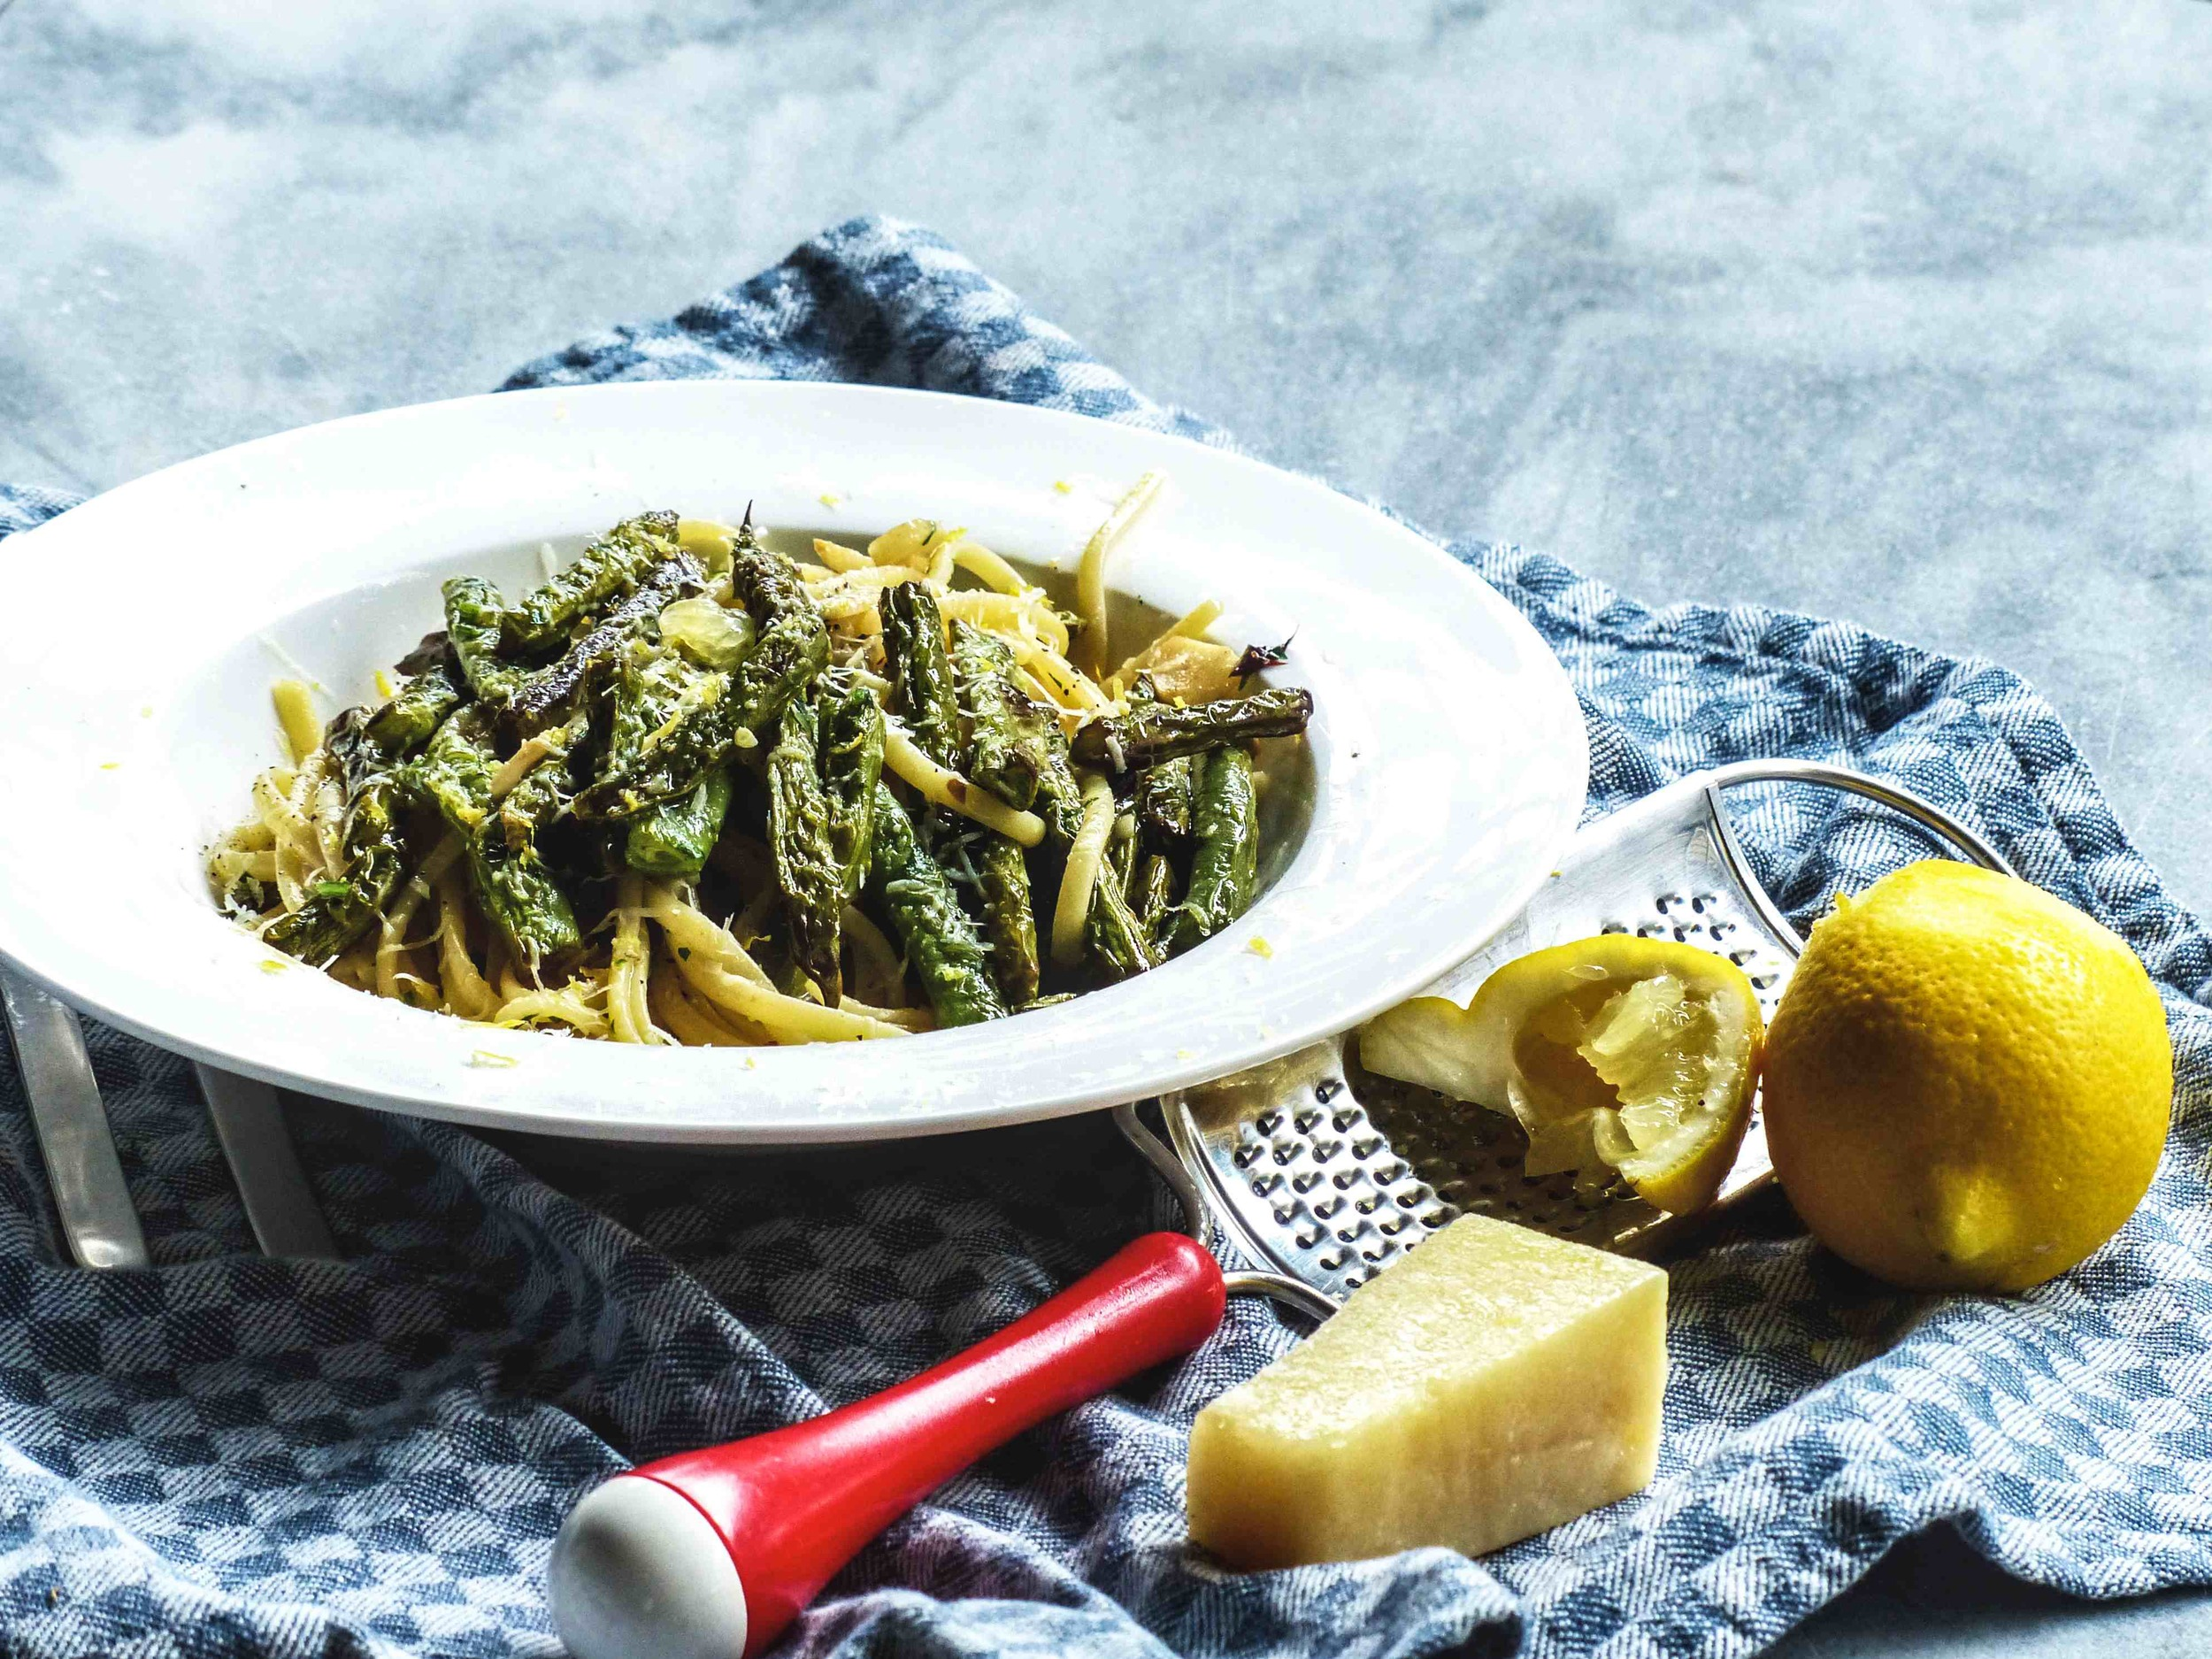 bean pasta with a hint of spiciness..    Servings: 1 person    Preparation Time: 10 minutes    Cooking Time: 15-20 minutes    Ingredients:   100-150g french beans, halved  100g pasta  1/2 lemon zest  1/2 chili, deseeded, finely chopped  2 garlic cloves  1/2 cup vegetable stock/cooked pasta water  1/2 cup parsley pesto*  1-2 tbsp grated pecorino  extra-virgin olive oil    Instructions:     1) Bring a pot of salted water to boil, cook pasta according to its packaging label.    2) Preheat a sauce pan with 2-3 tbsp olive oil, cook the french beans on medium-to-high heat for 3-5 minutes. Put a lid on to avoid the oil spattered. Stiroccasionally toavoid burning the beans.     3) Add garlic and chili. Cook for 3-5 minutes, Reduce heat if the fire is too strong.     4) Add vegetable stock and simmer for 1 minute.     5) Add the cooked pasta to the saucepan. Mix well. Season. Heat off.     6) Add parsley pesto and mix well.     7) Serve the pasta with some grated pecorino, fresh lemon zest, and a twist of lemon juice.     * Parsley pesto is made of chopped parsley, garlic, and extra-virgin olive oil. Season.